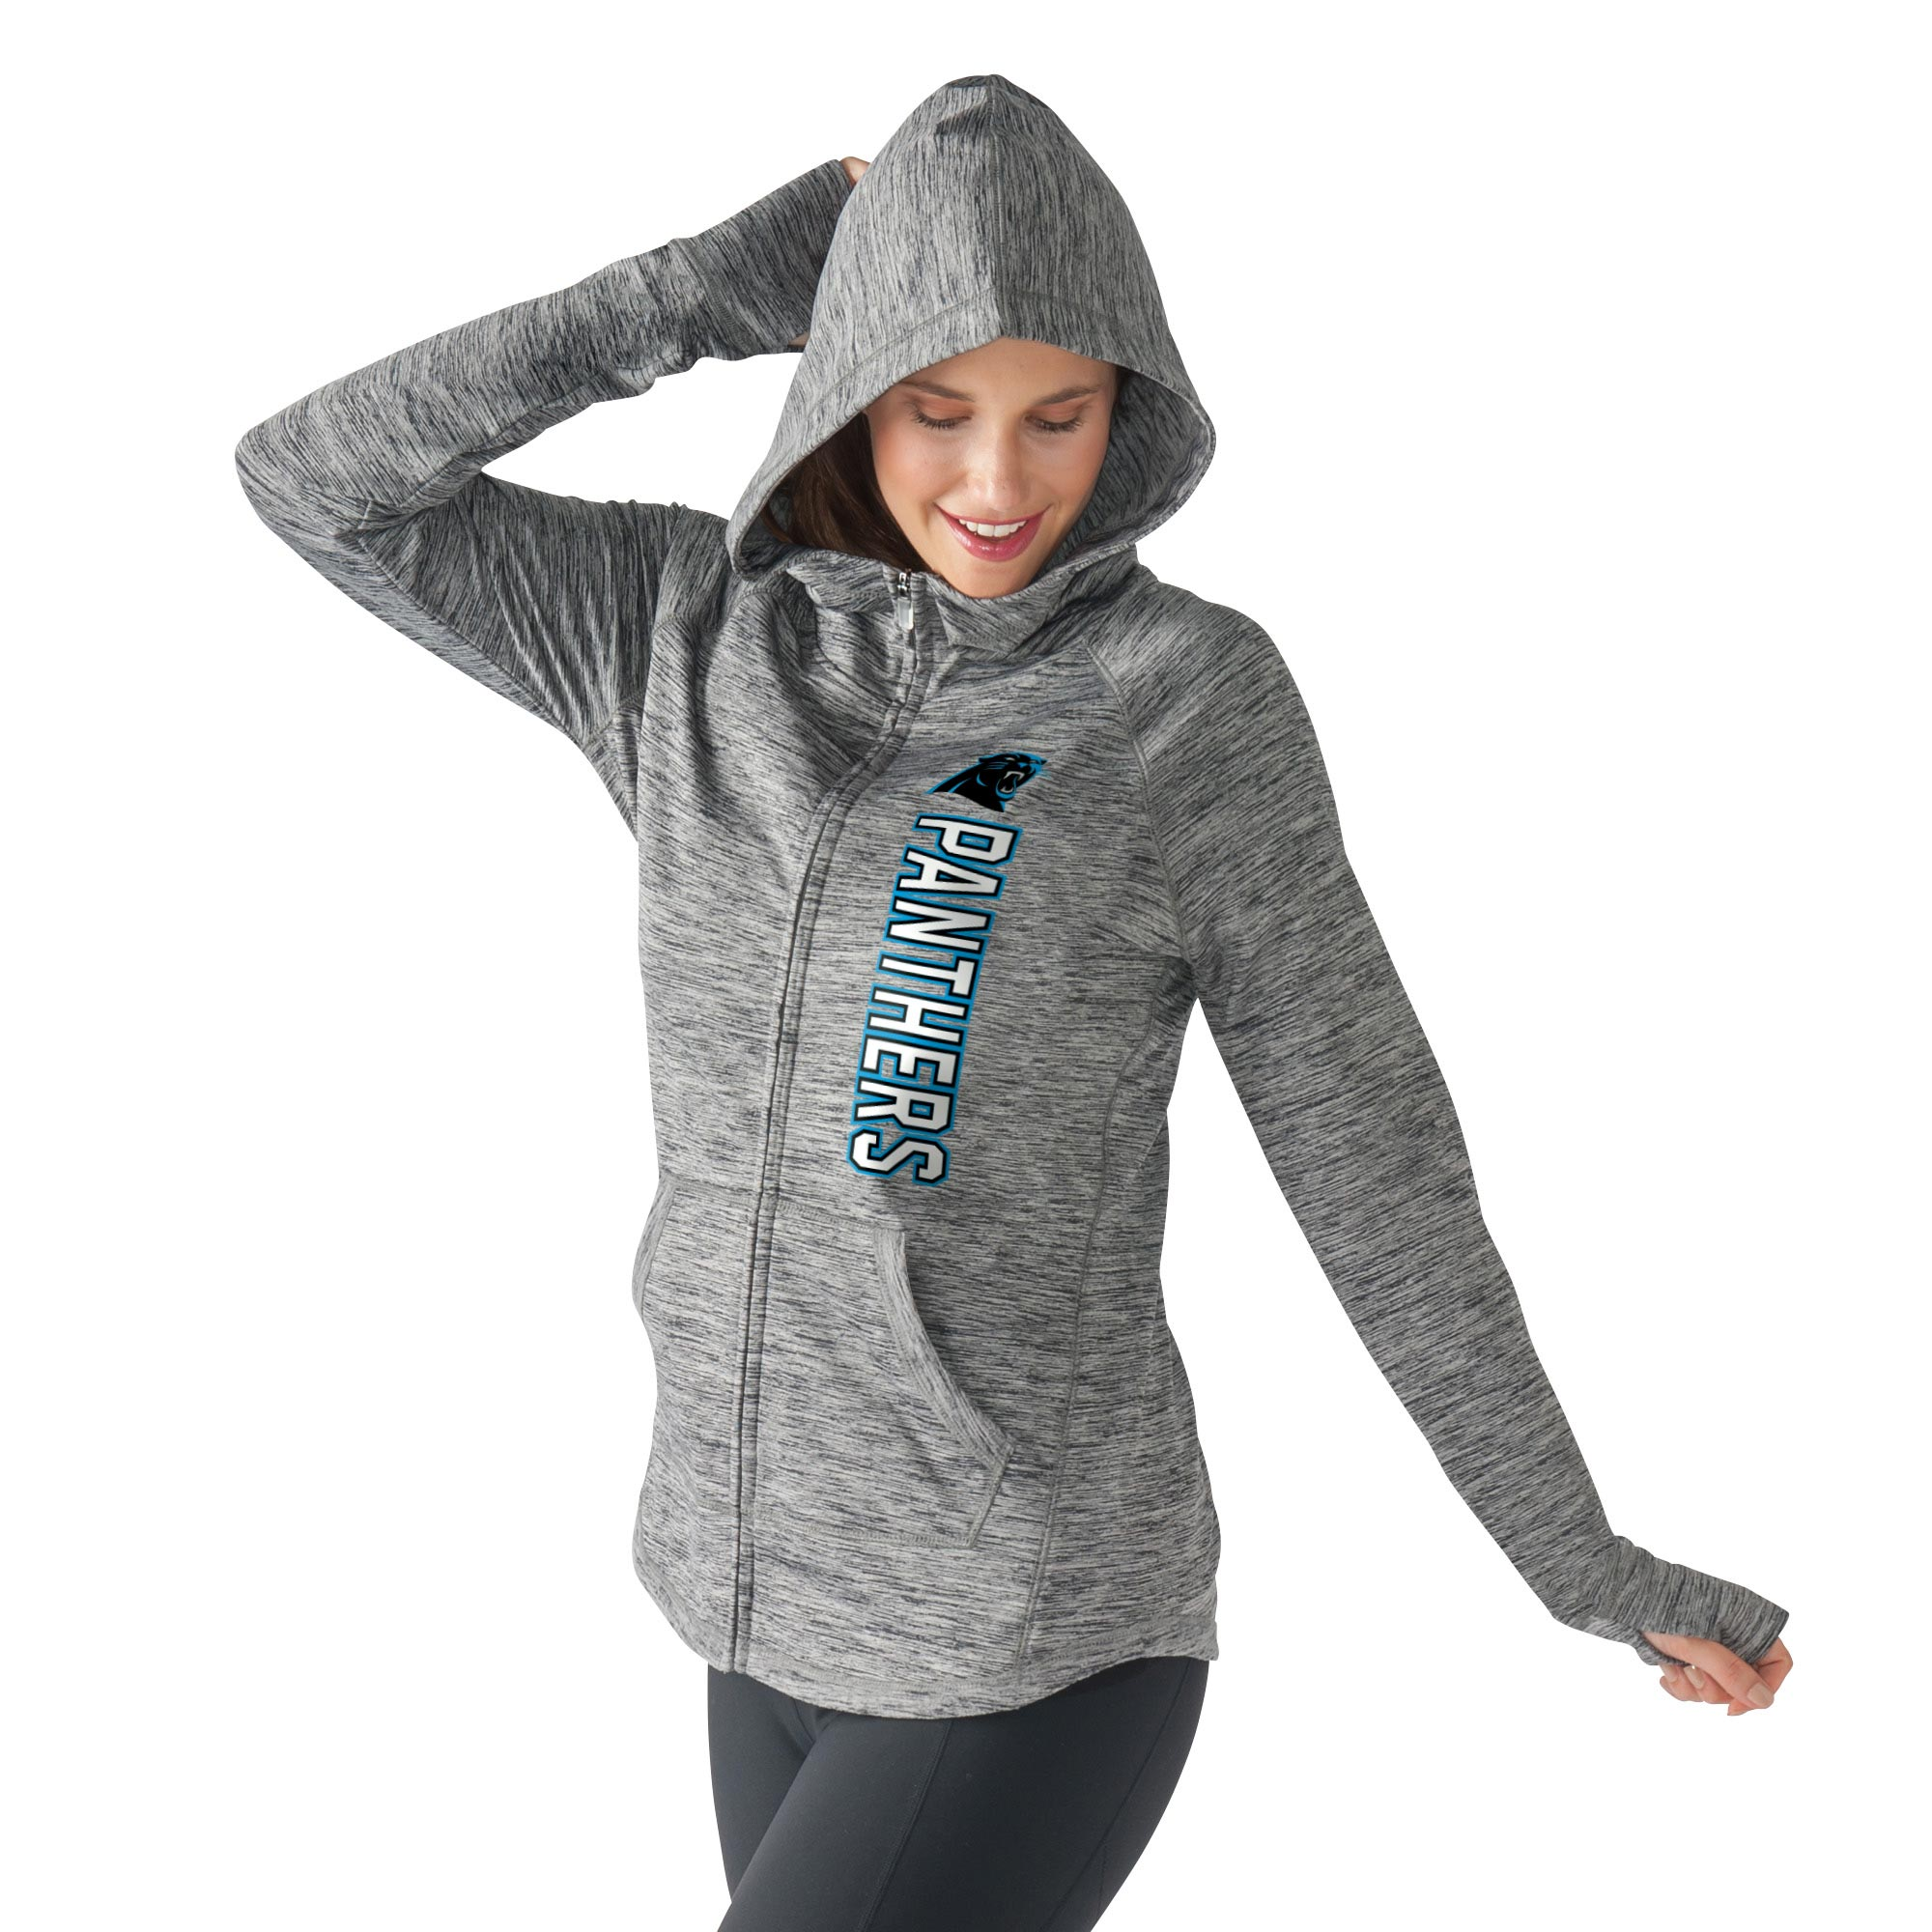 Carolina Panthers G-III 4Her by Carl Banks Women's Recovery Full-Zip Hoodie - Heathered Gray